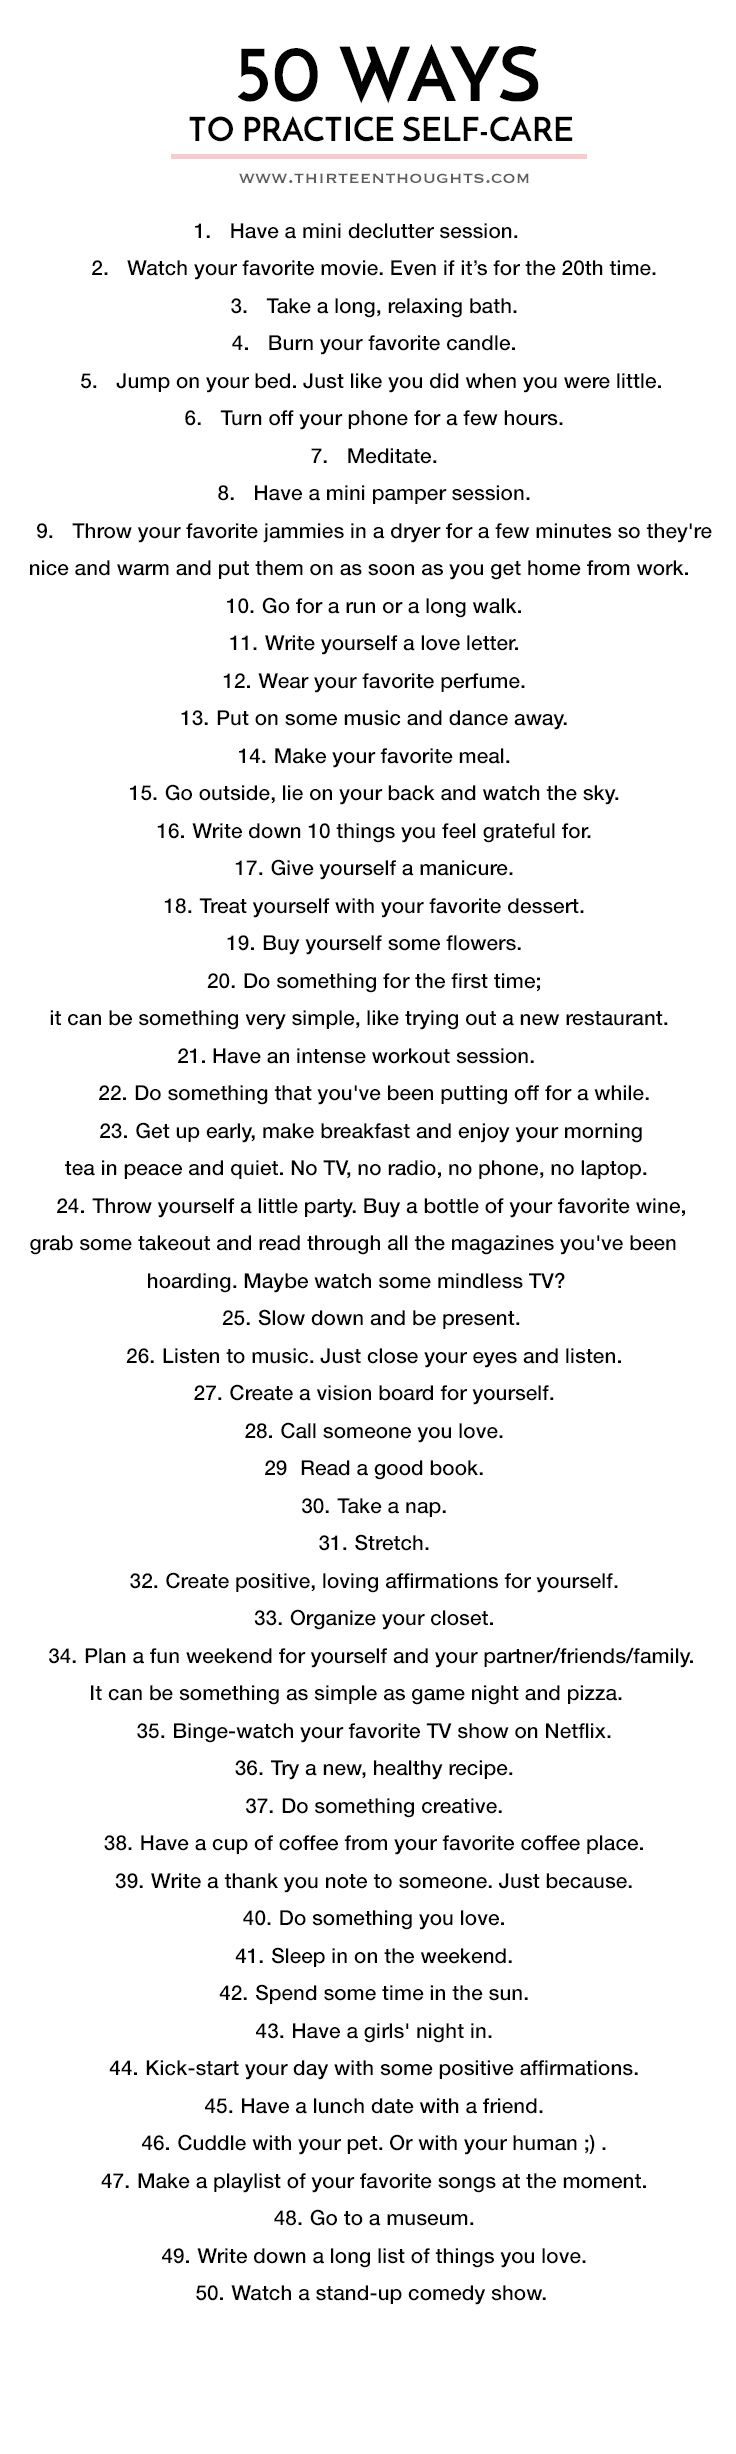 50 Ways To Practice Self-Care Free Downloadable List